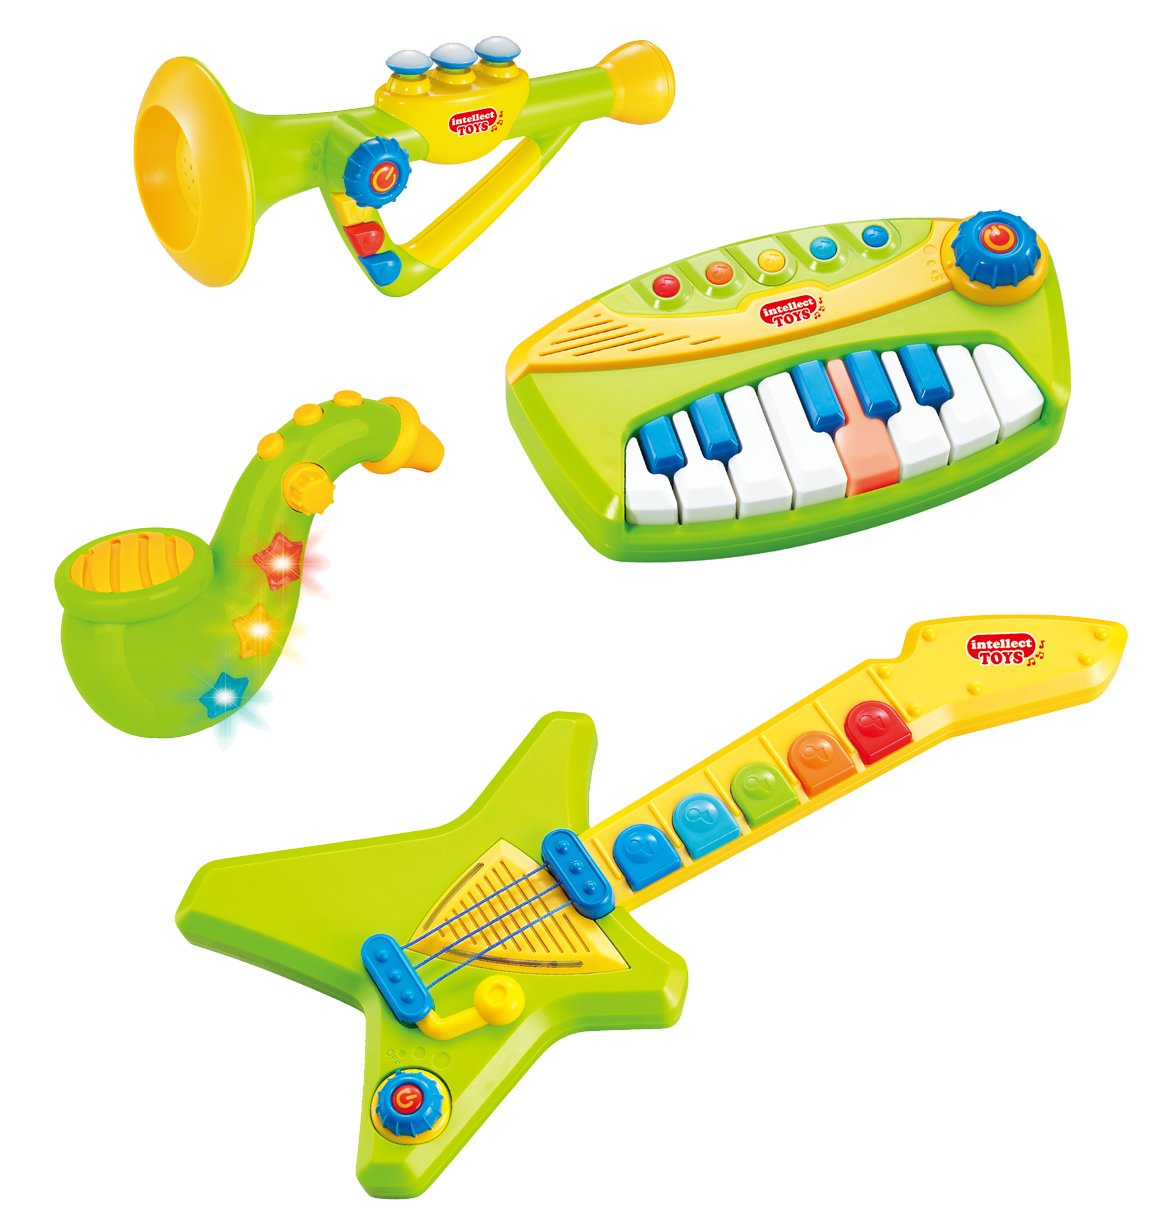 Liberty Imports 4-Piece Band Musical Toy Instruments Playset for Kids - Keyboard, Guitar, Saxophone and Trumpet - with Volume Control (Green)